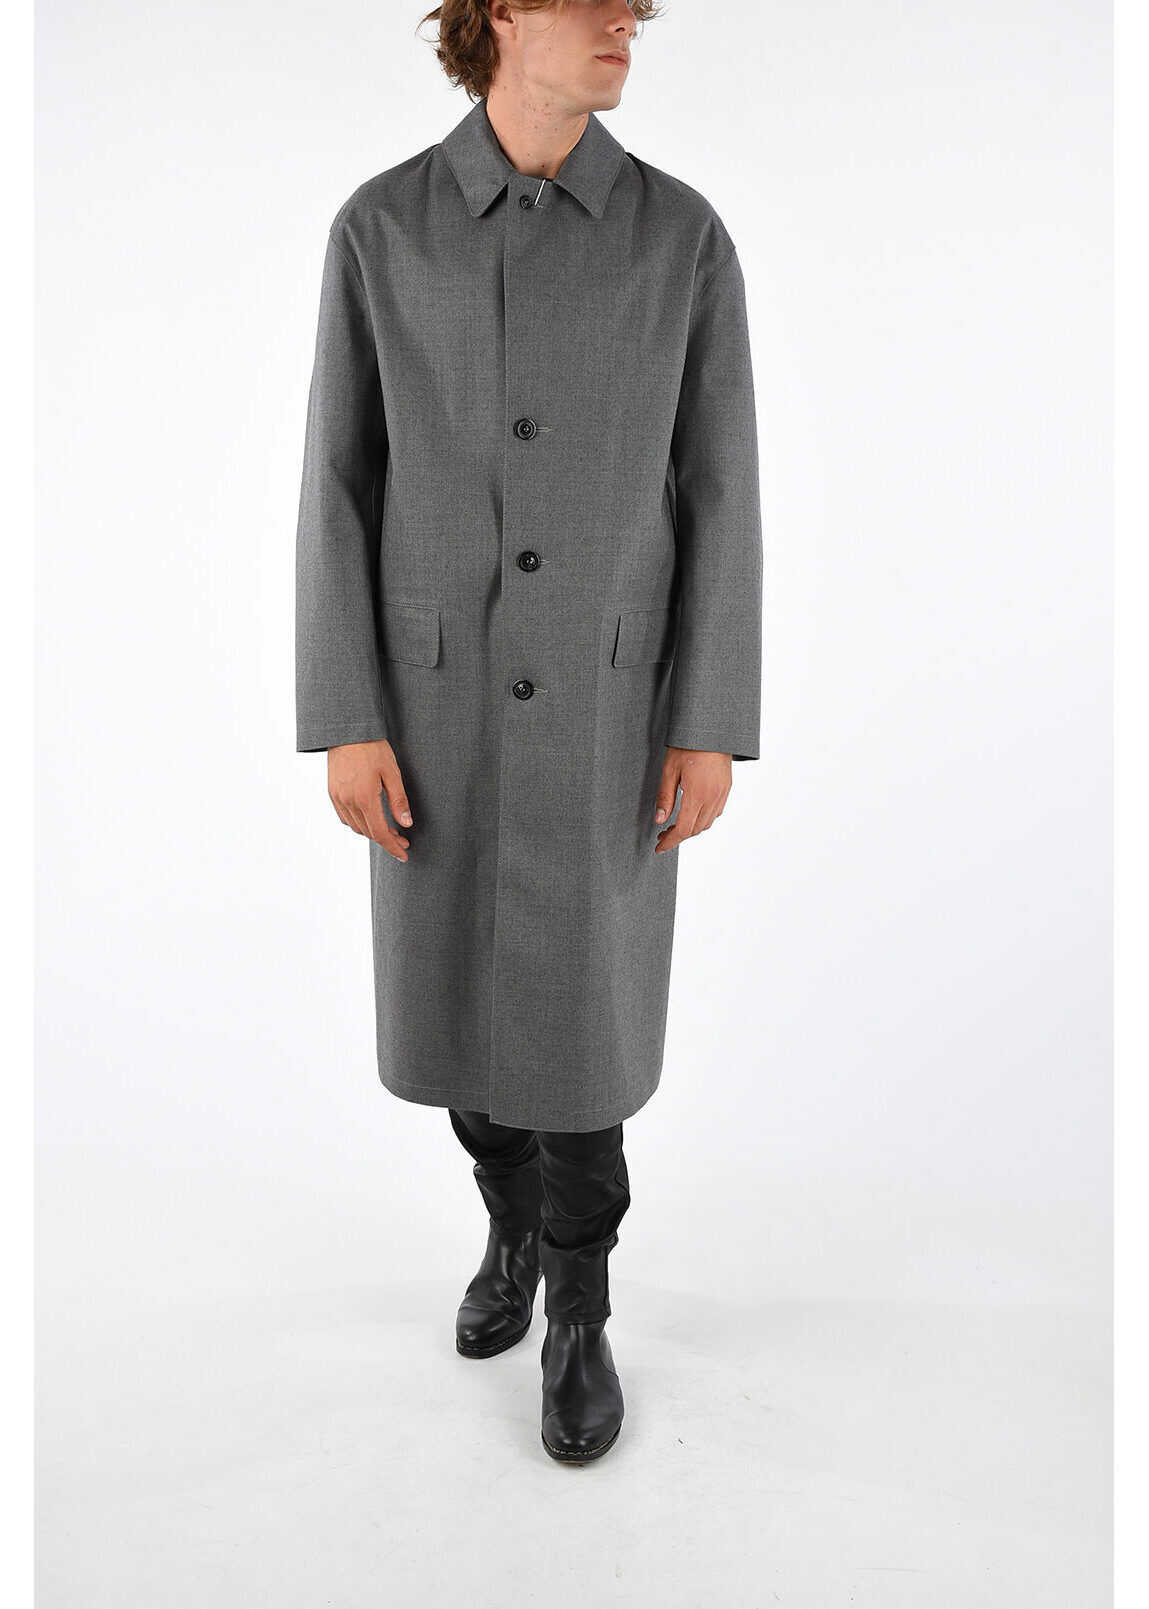 Maison Margiela MM10 MACKINTOSH Wool Cotton Trench GRAY